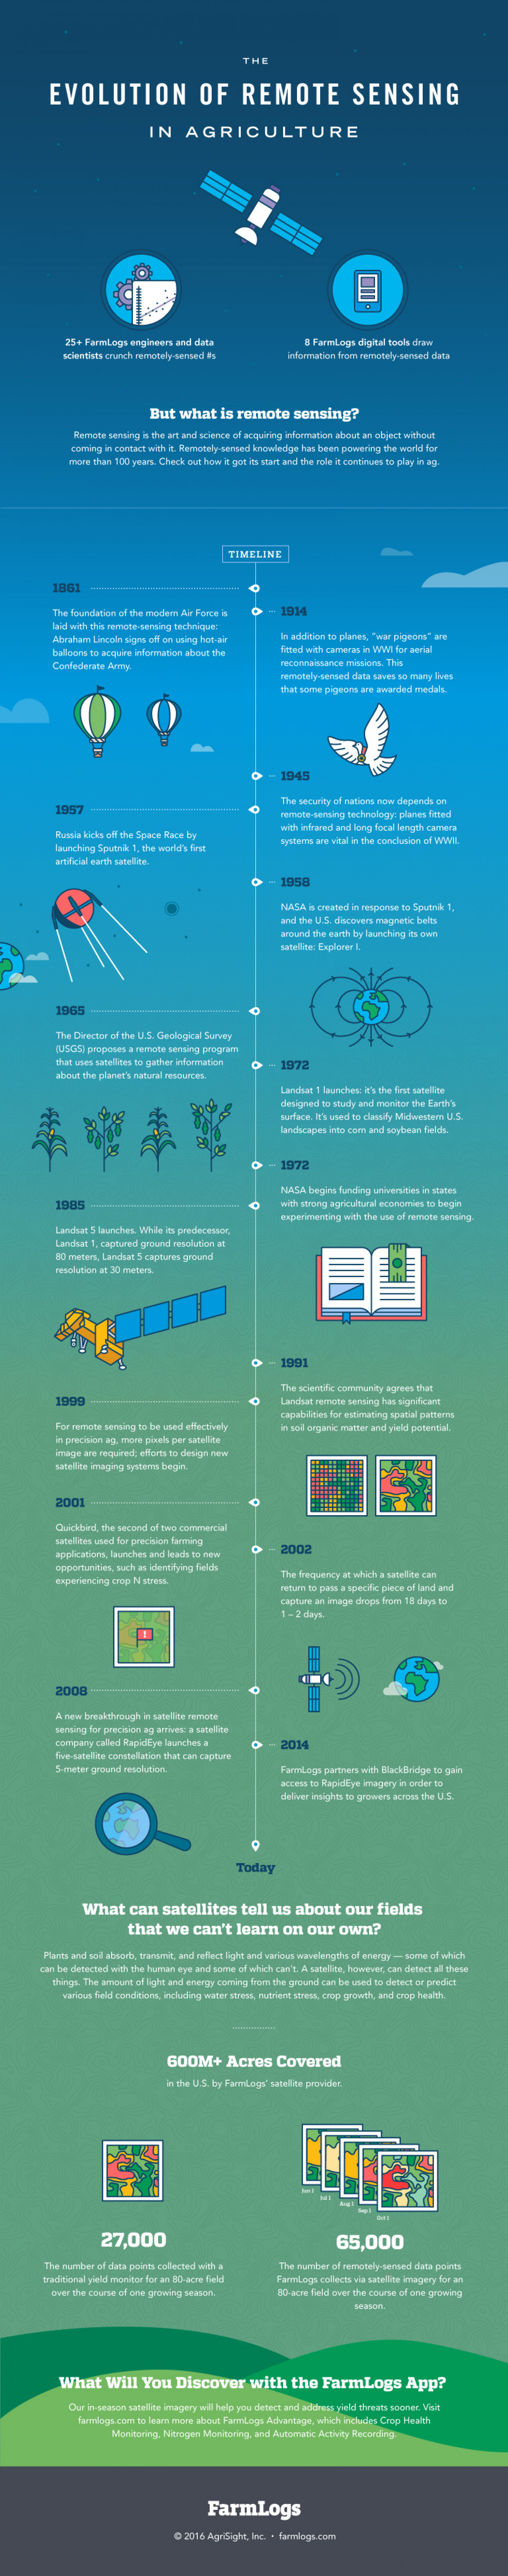 Evolution of Remote Sensing in Agriculture Infographic